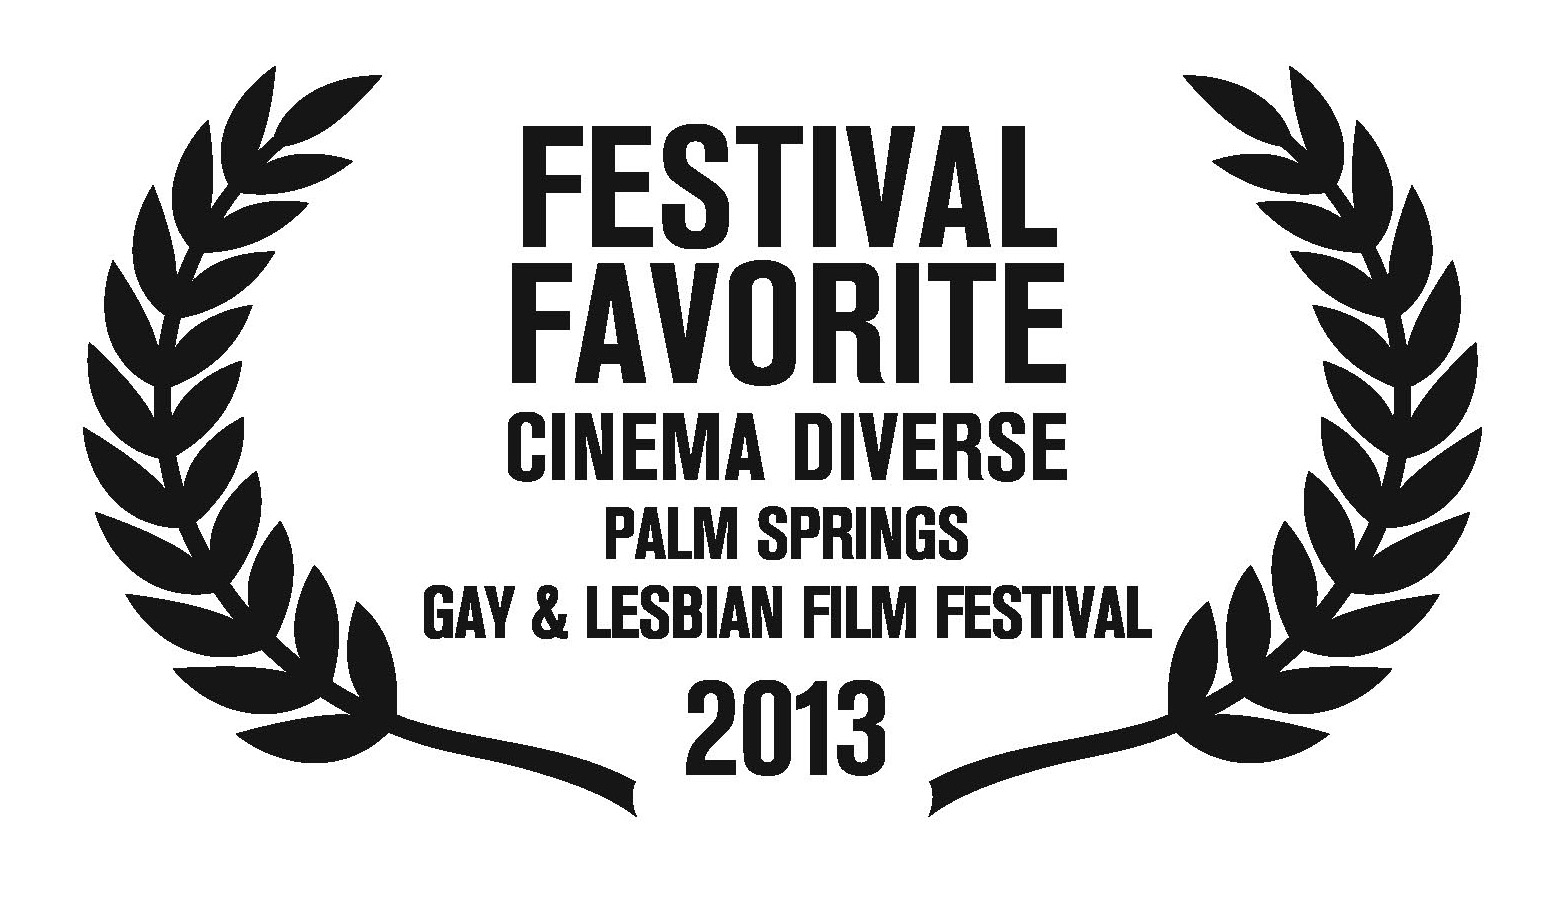 CinemaDiverse: Festival Favorite